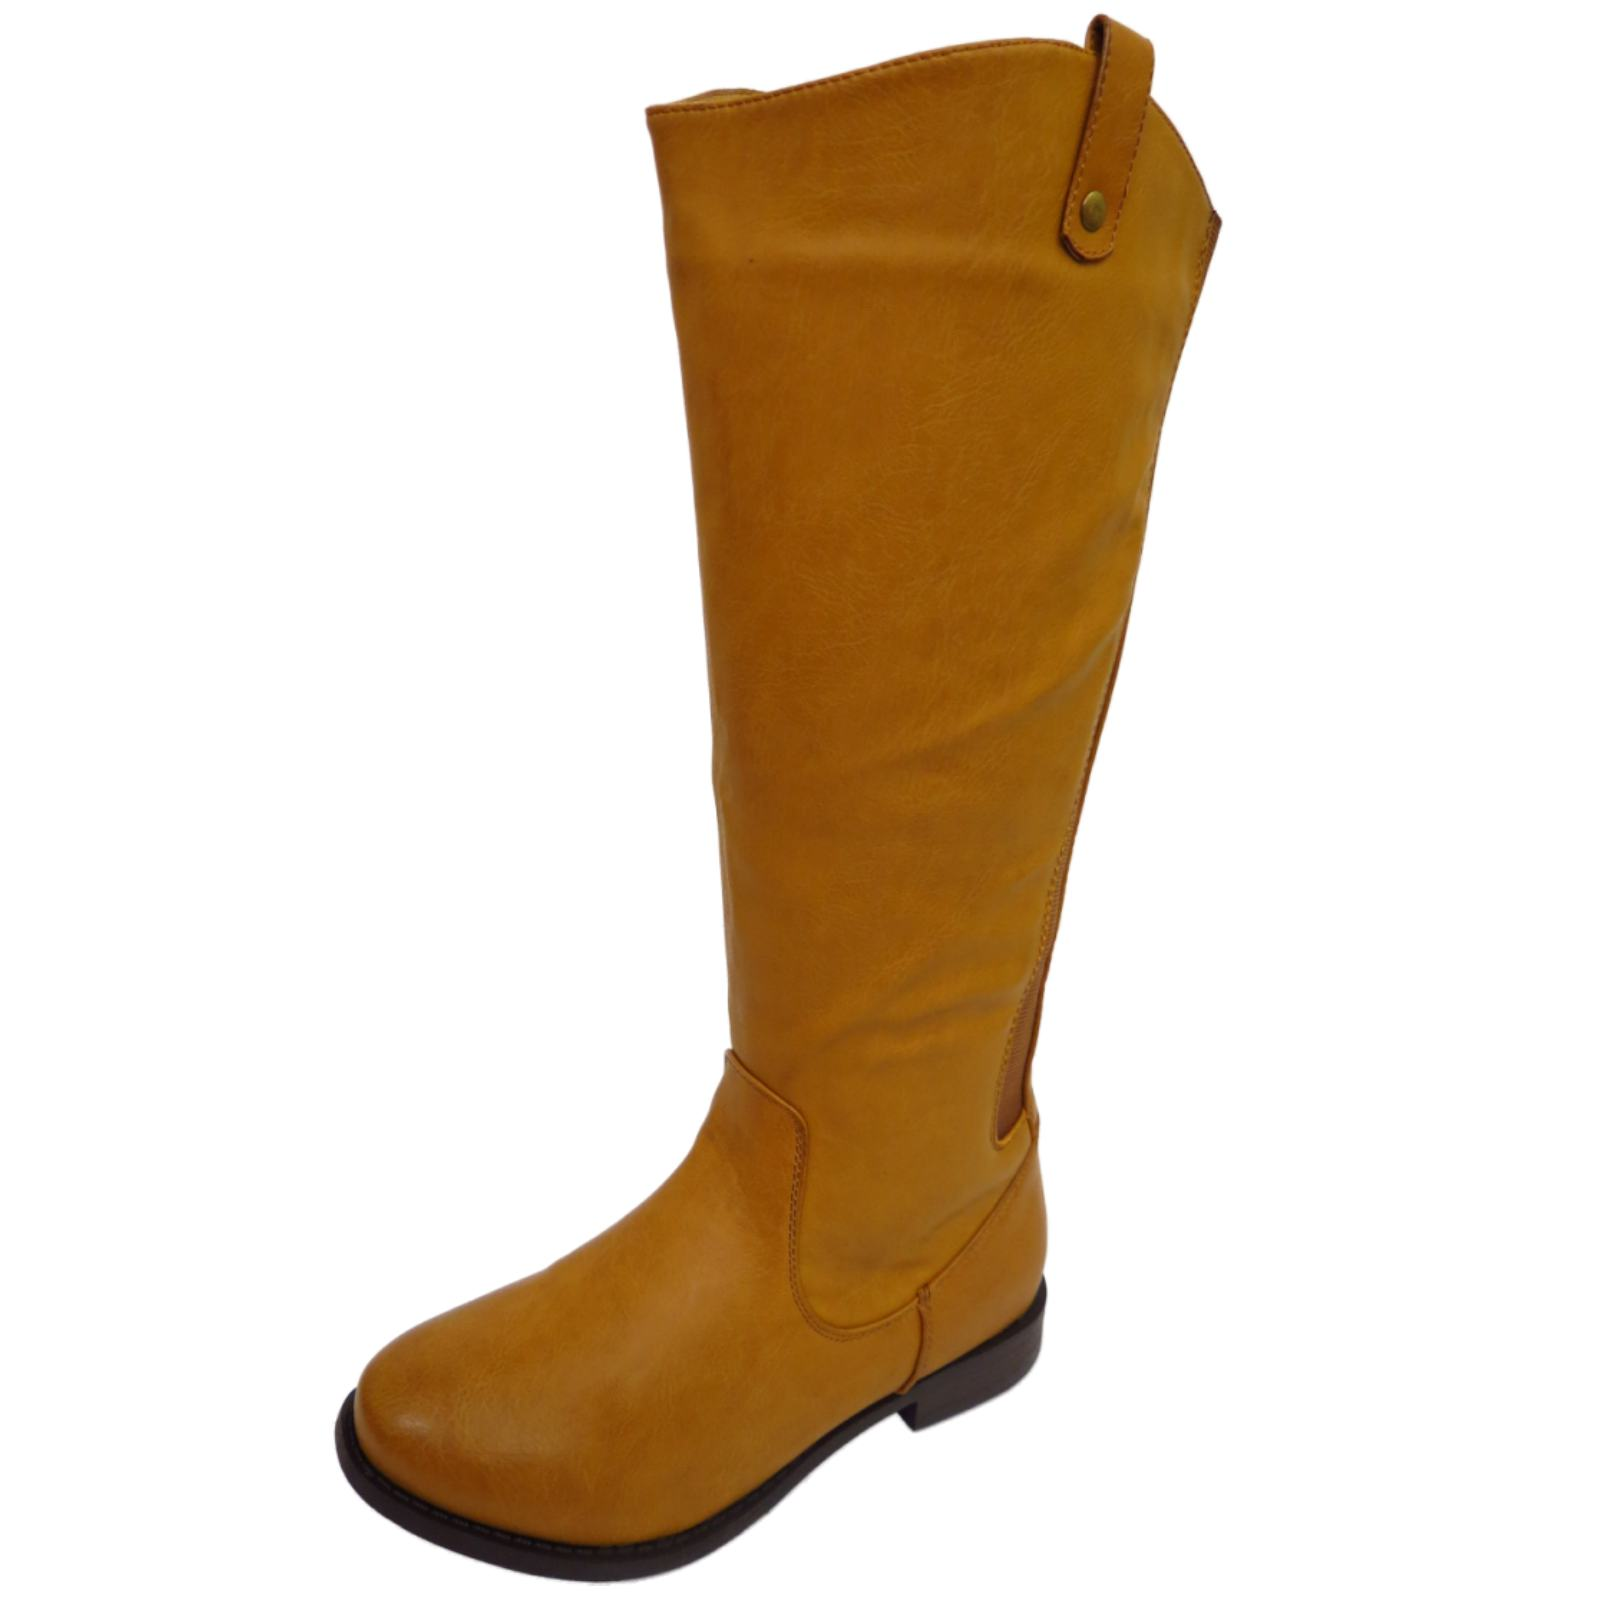 LADIES TAN EXTRA WIDE CALF WIDE-FIT